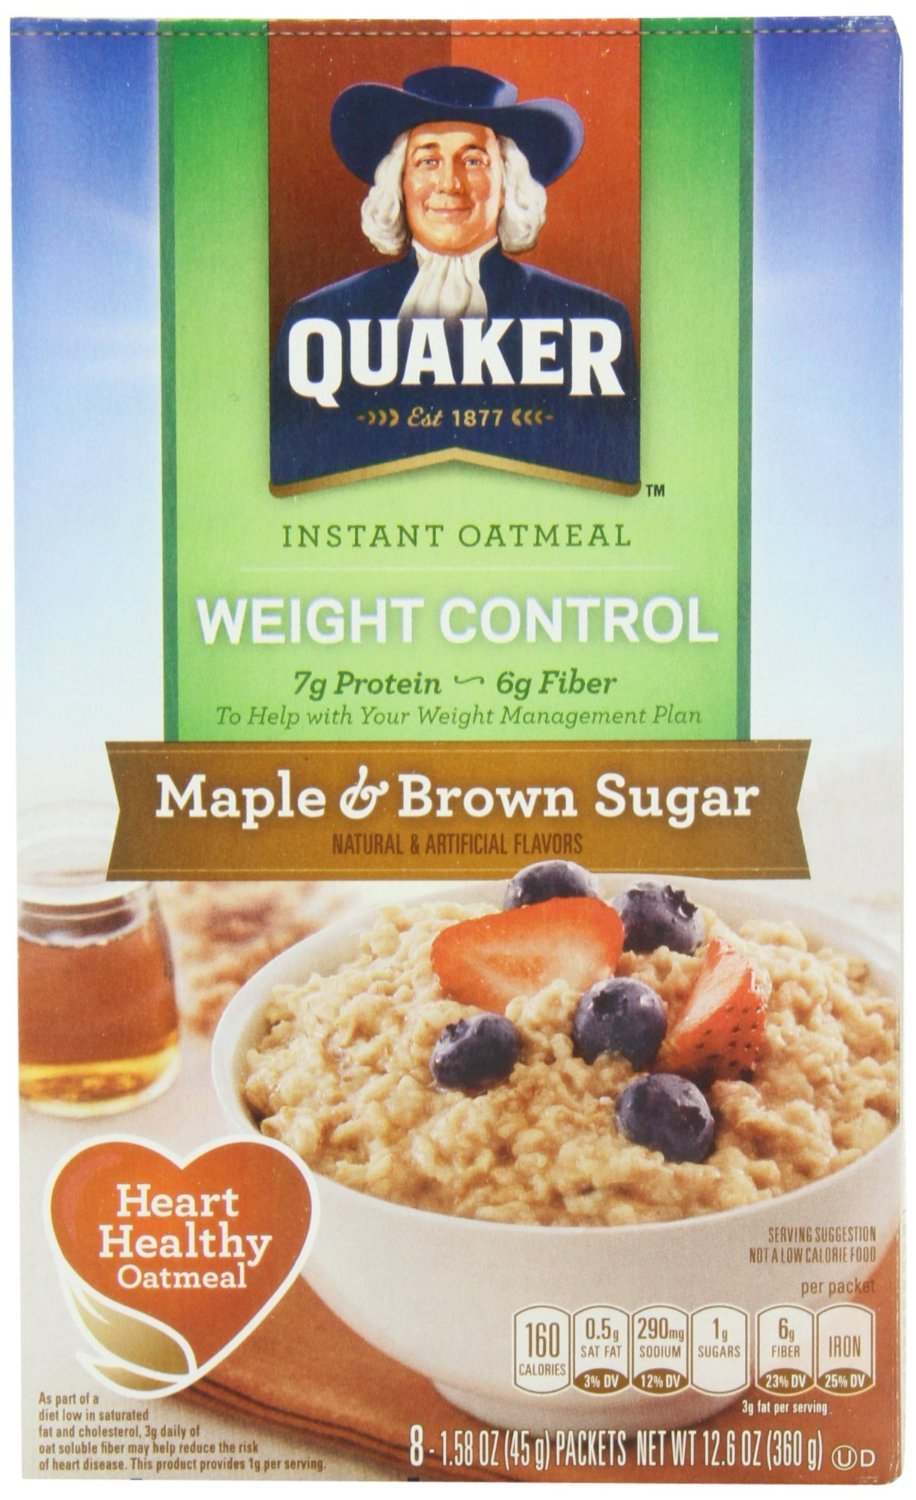 Quaker Instant Oatmeal - Maple & Brown Sugar, Heart Healthy Oatmeal, 10-count box, (Pack of 2)